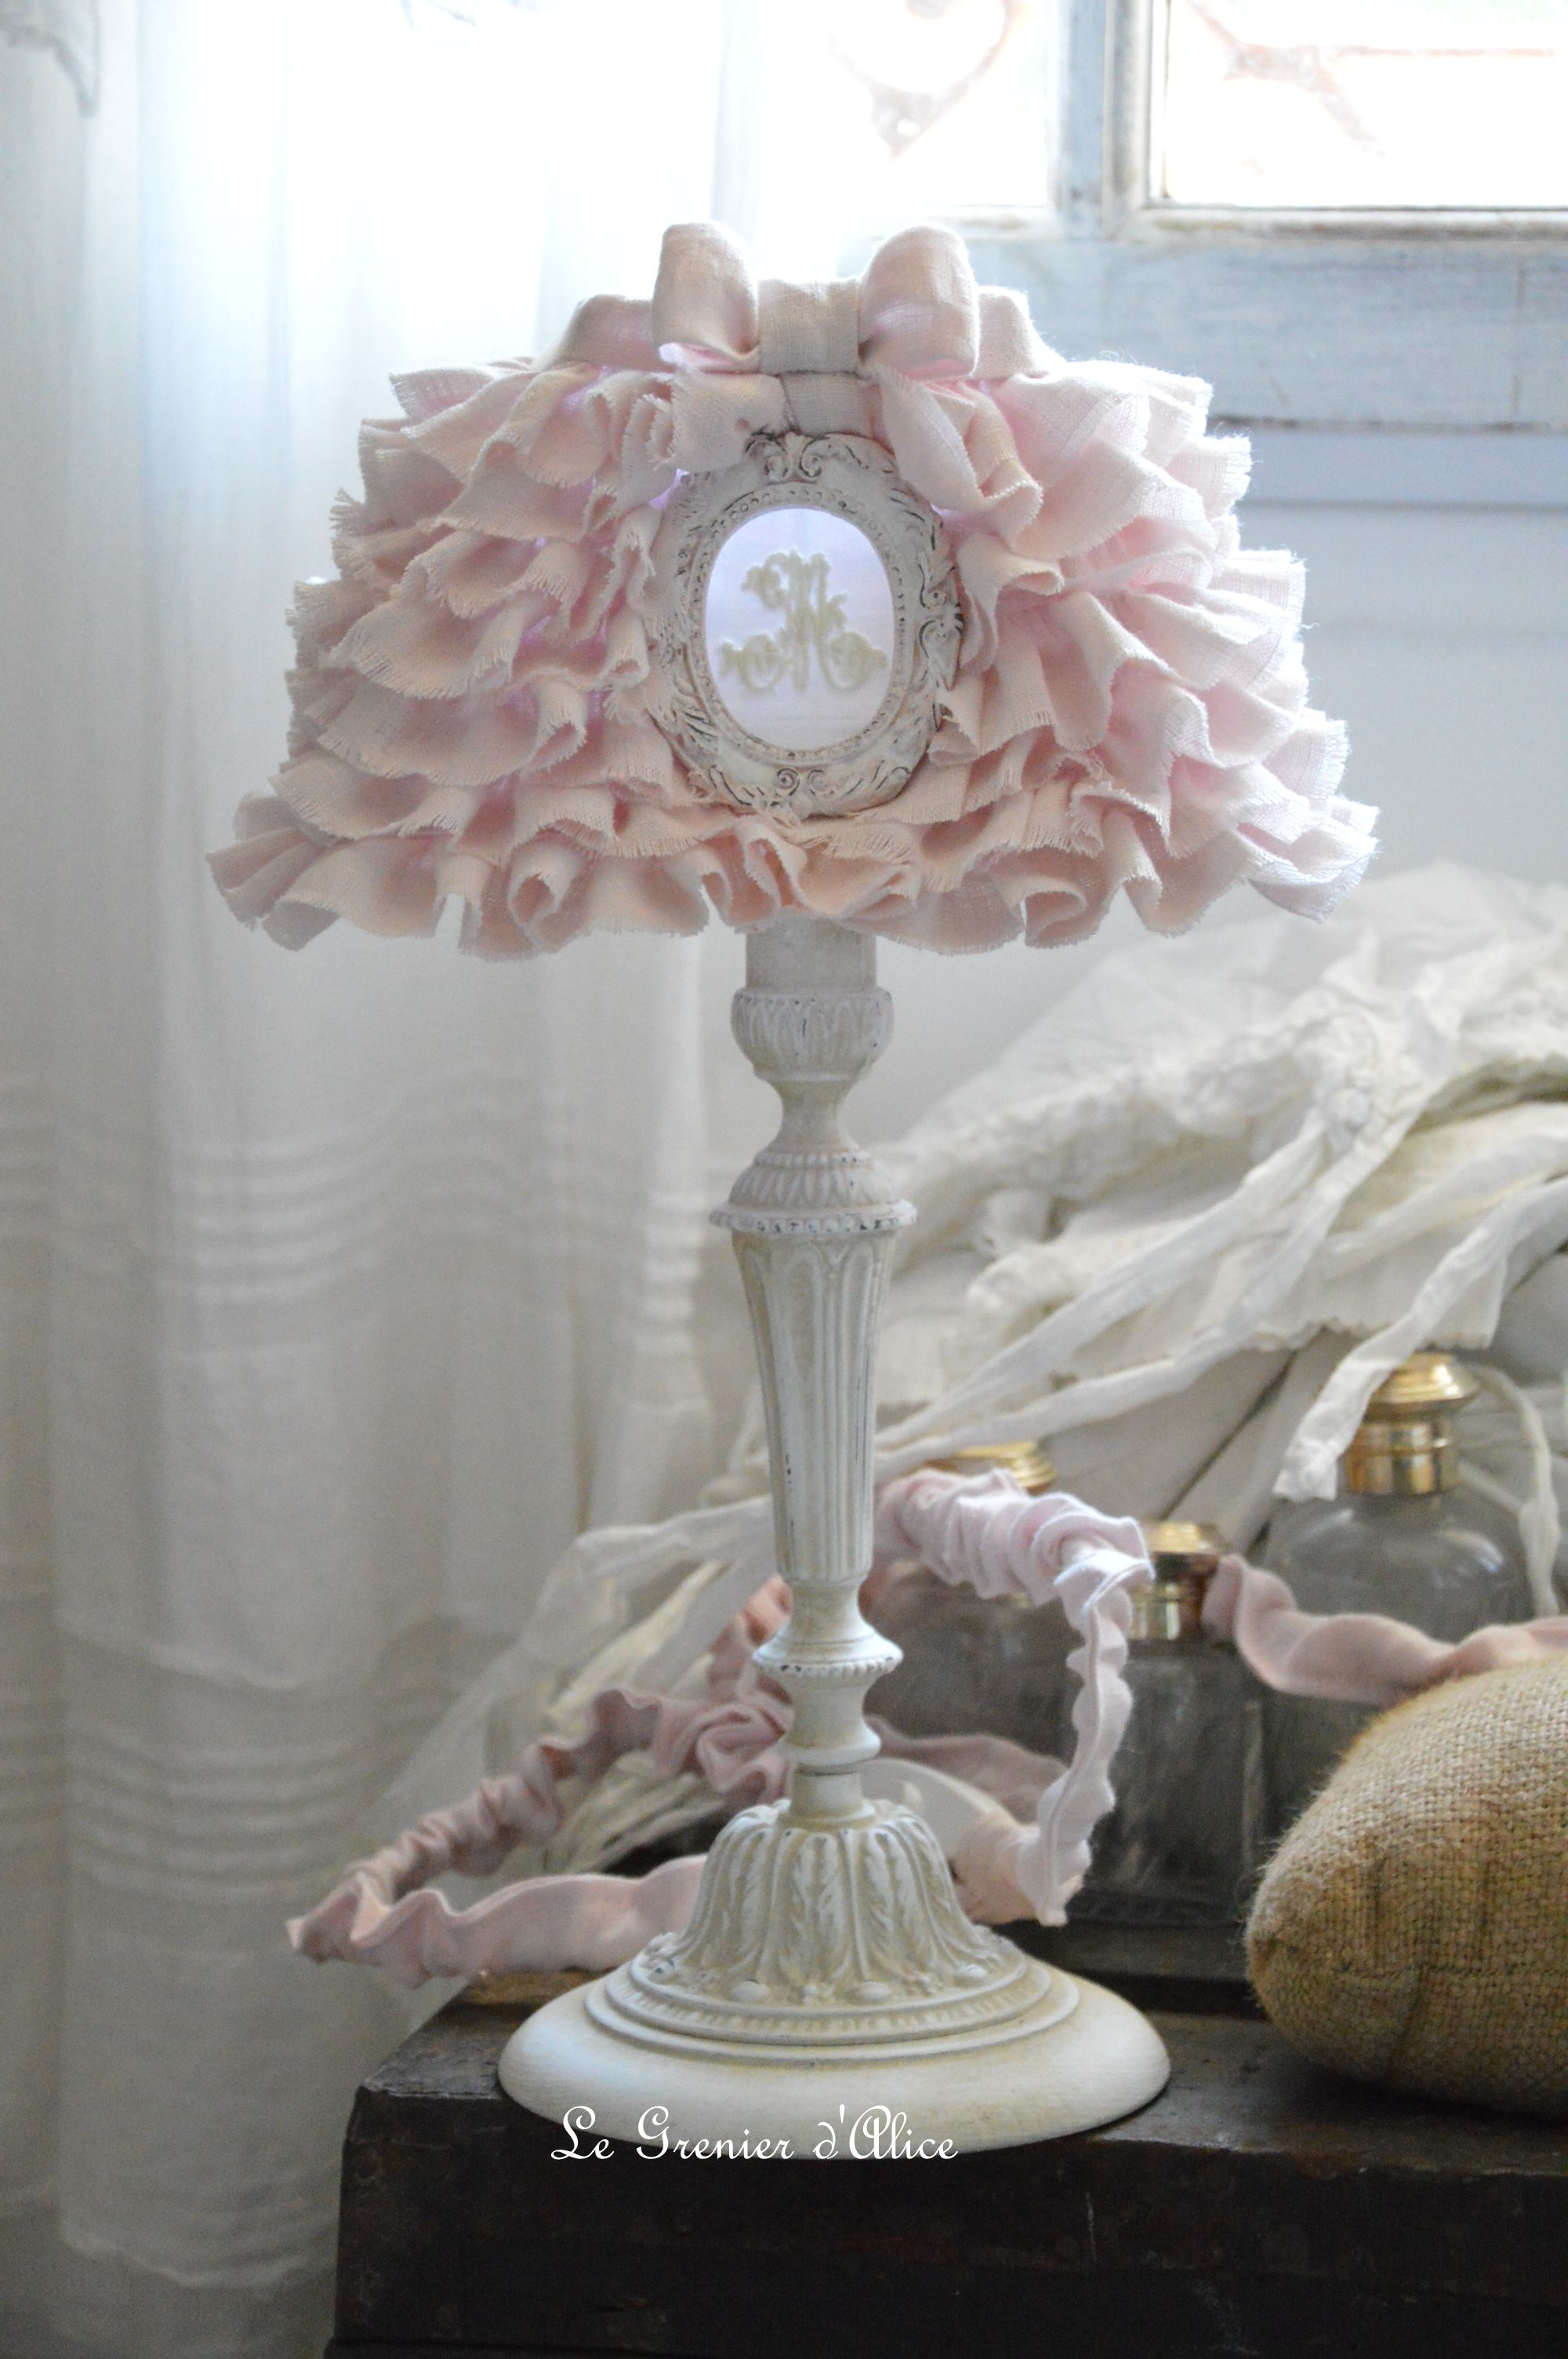 lampe de chevet shabby chic et romantique lampe de charme pied de lampe patin lin avec abat. Black Bedroom Furniture Sets. Home Design Ideas